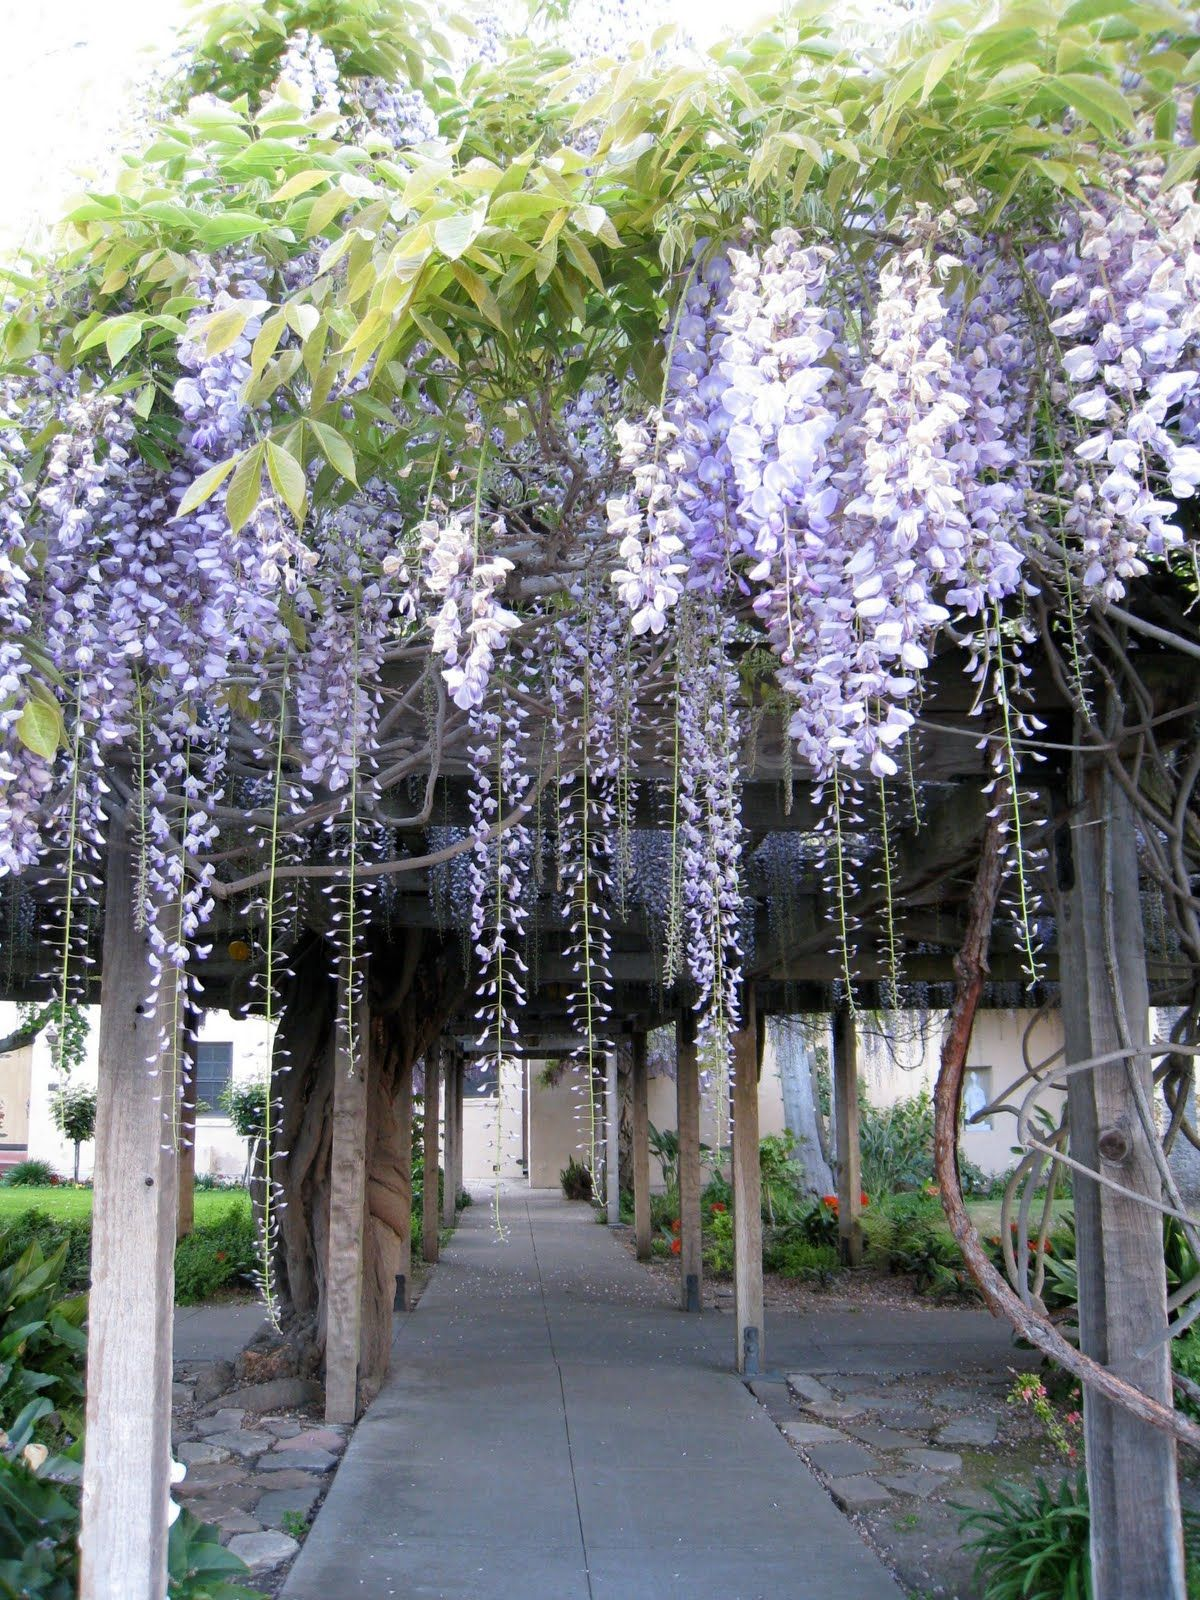 Wisteria Arch Note To Northerners There Is A Winter Hardy Variety Available In Minnesota Now I Have 2 Plants Growing Up The Side Of My Stucco